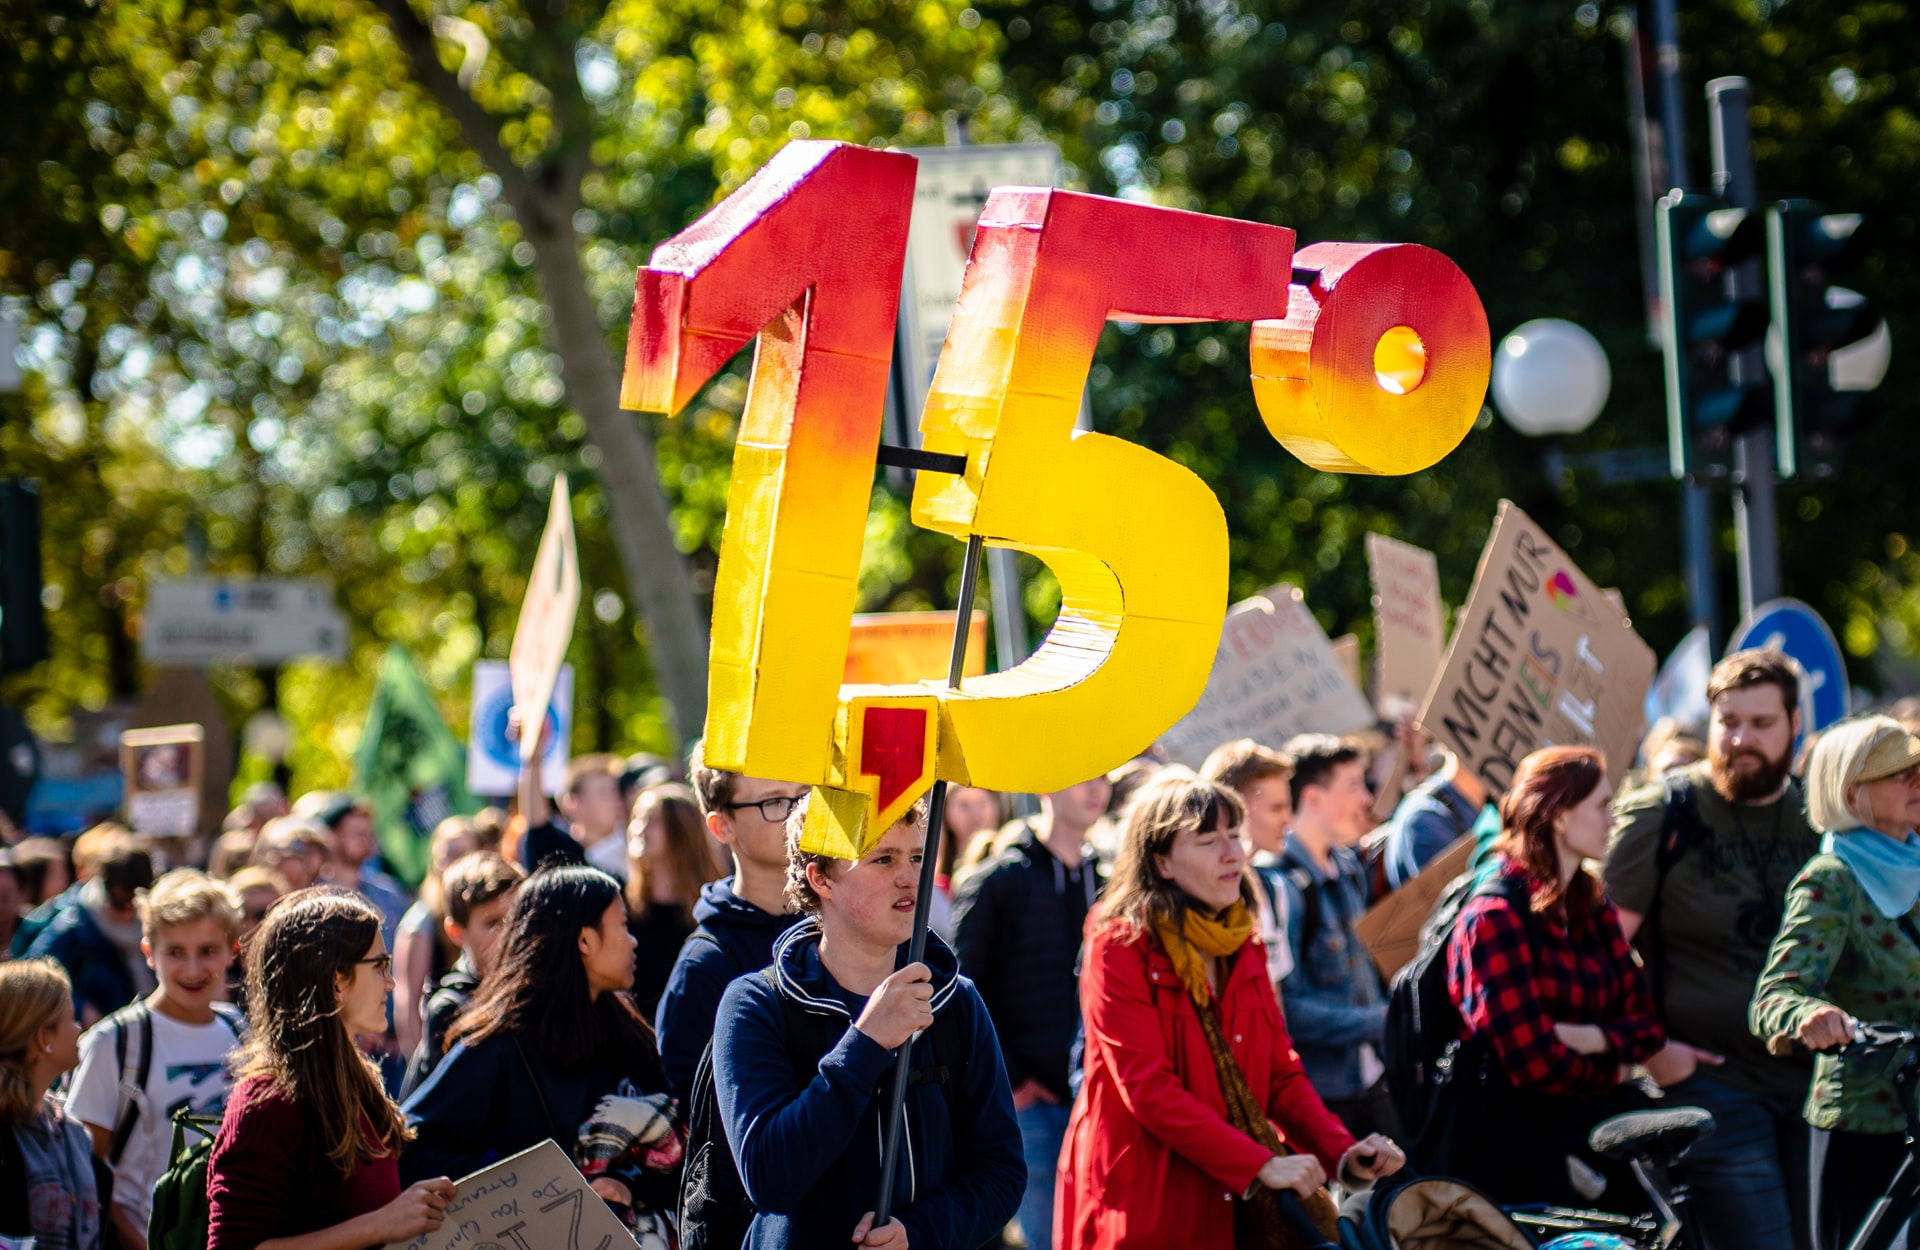 <p>2019 was a major year for activism, including this protest in Germany. Can 2020 lead to even greater action? Photo by Mika Baumeister/Unsplash</p>